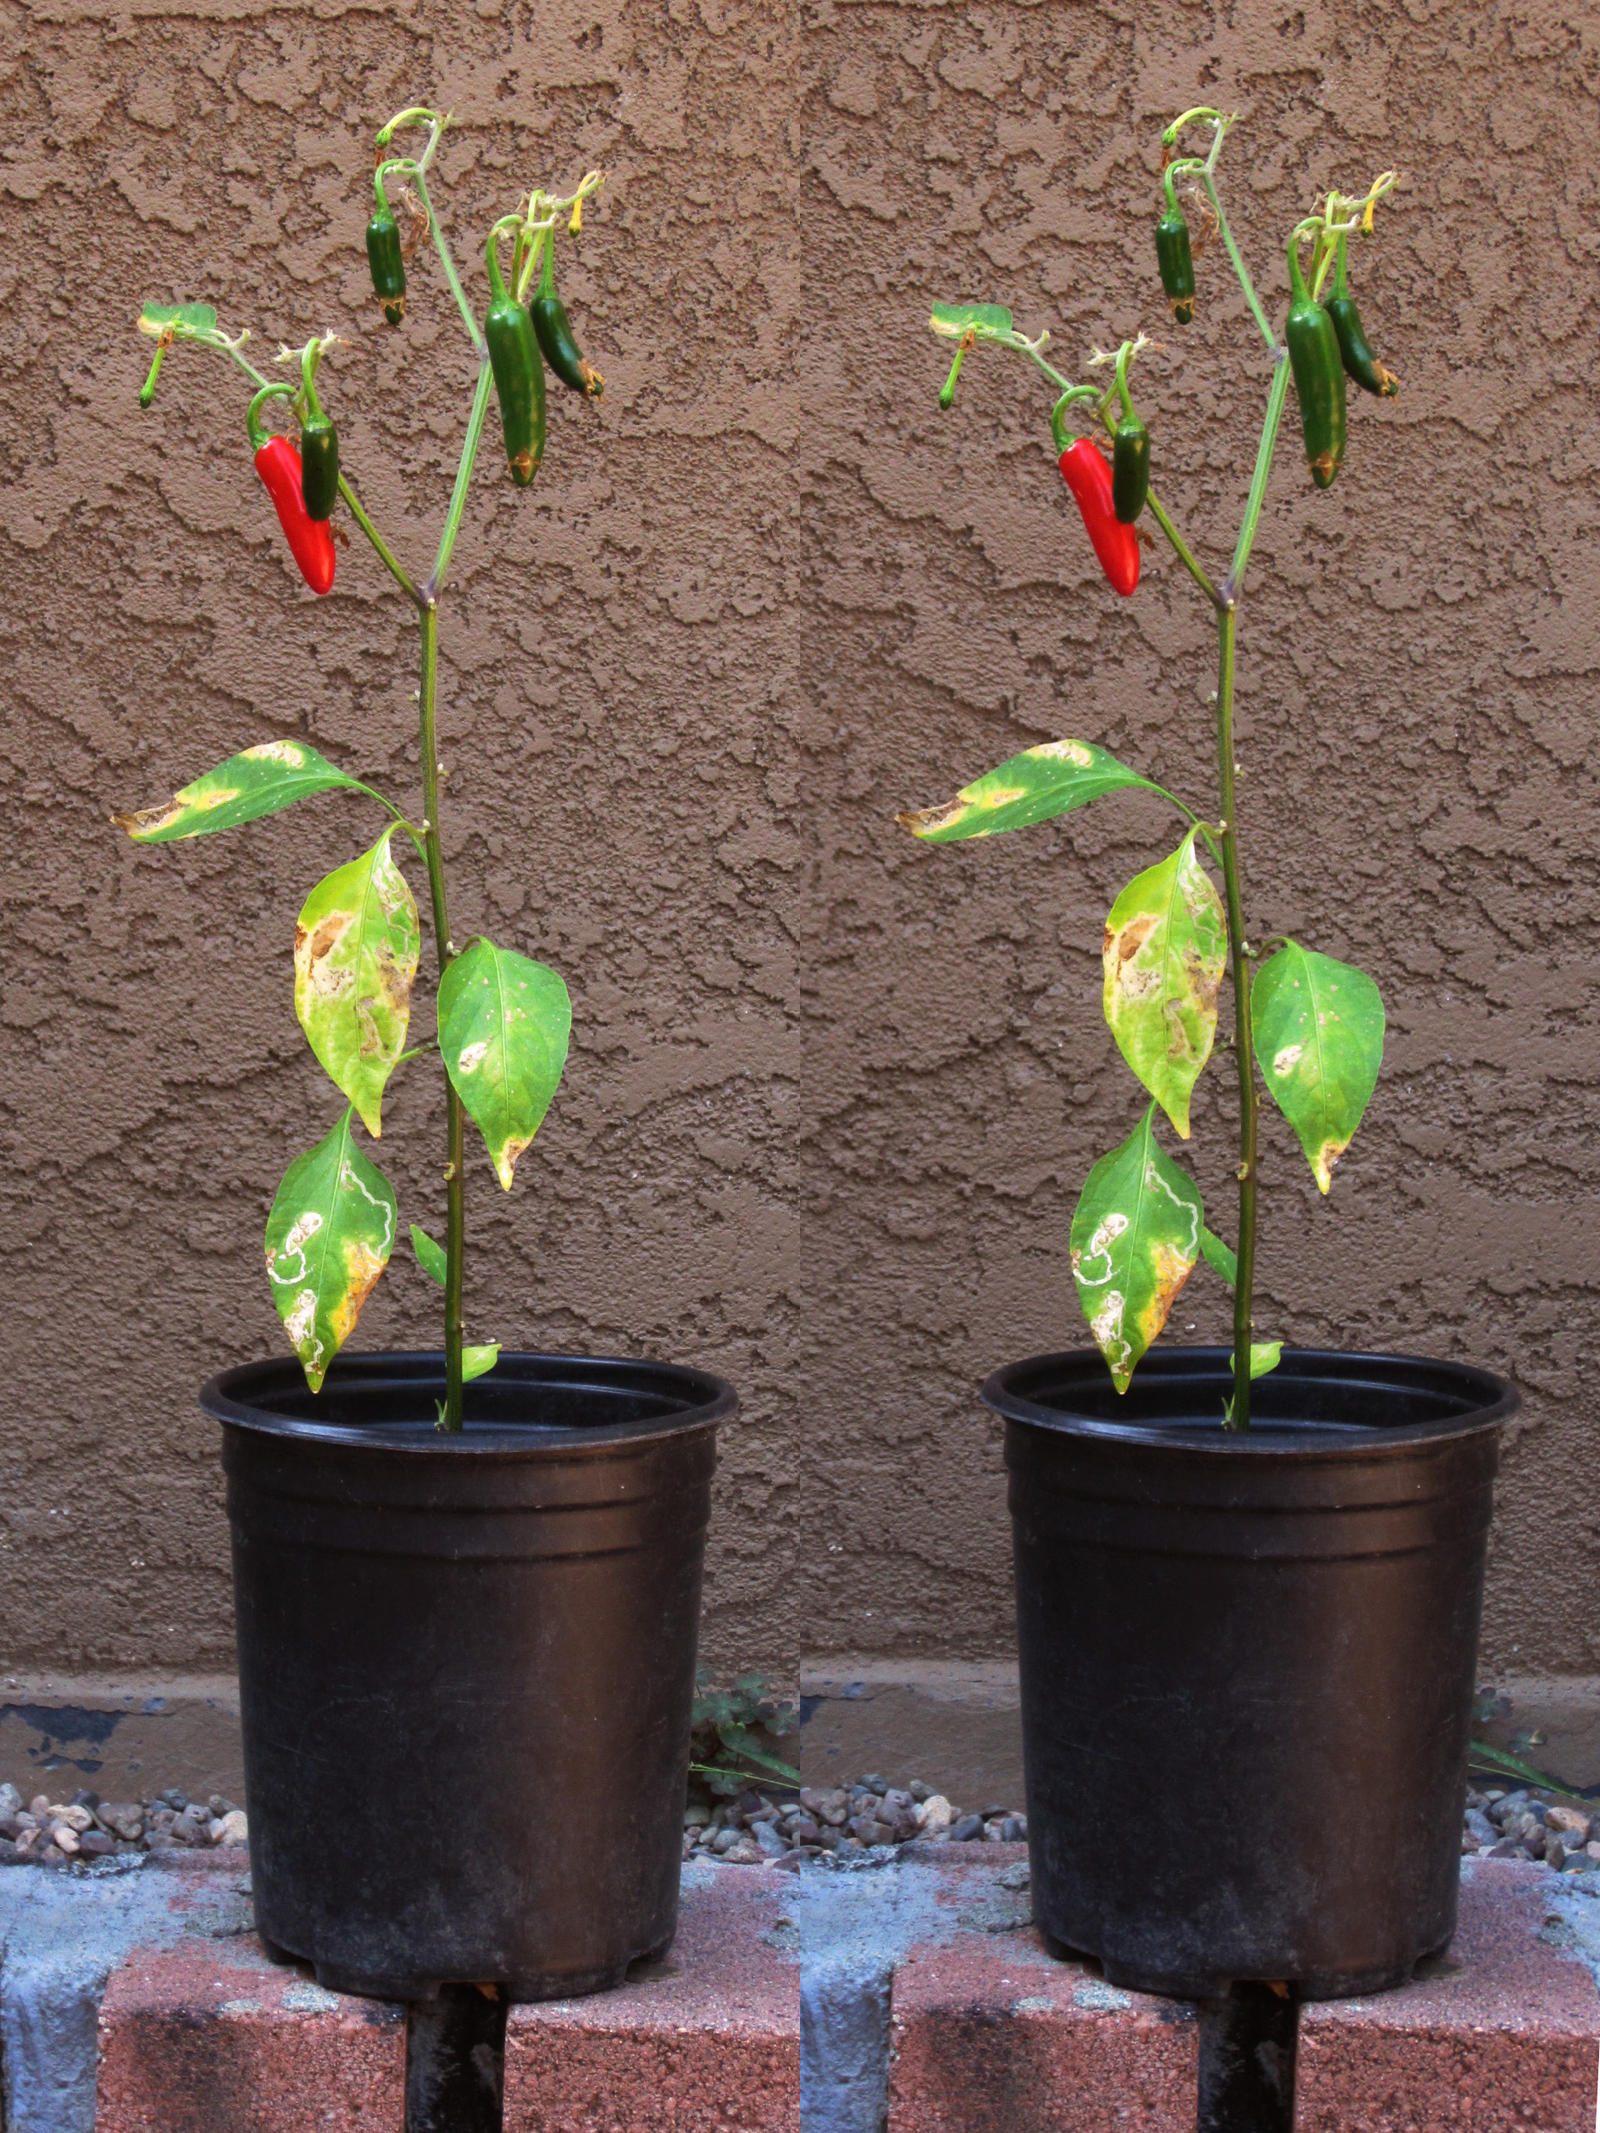 Stereograph - Chili Pepper by alanbecker